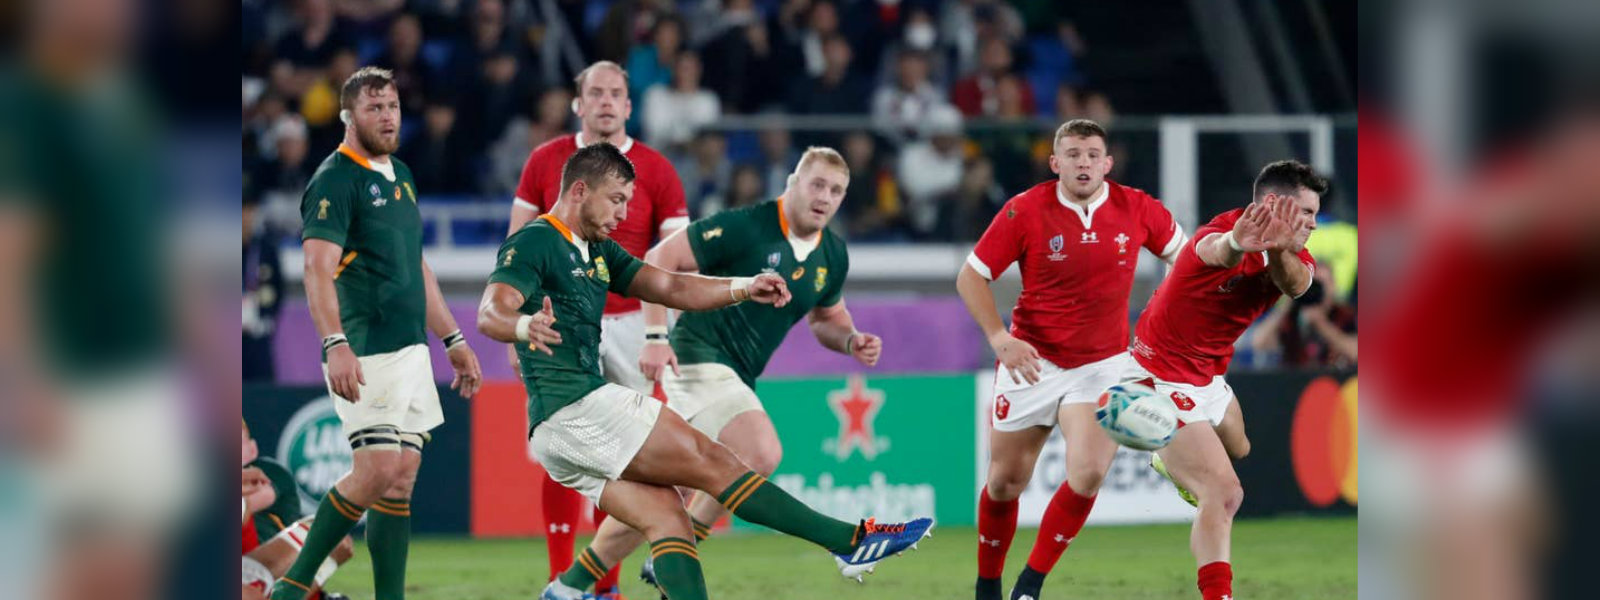 Springbok enters the RWC 2019 finale beating Wales 19-16